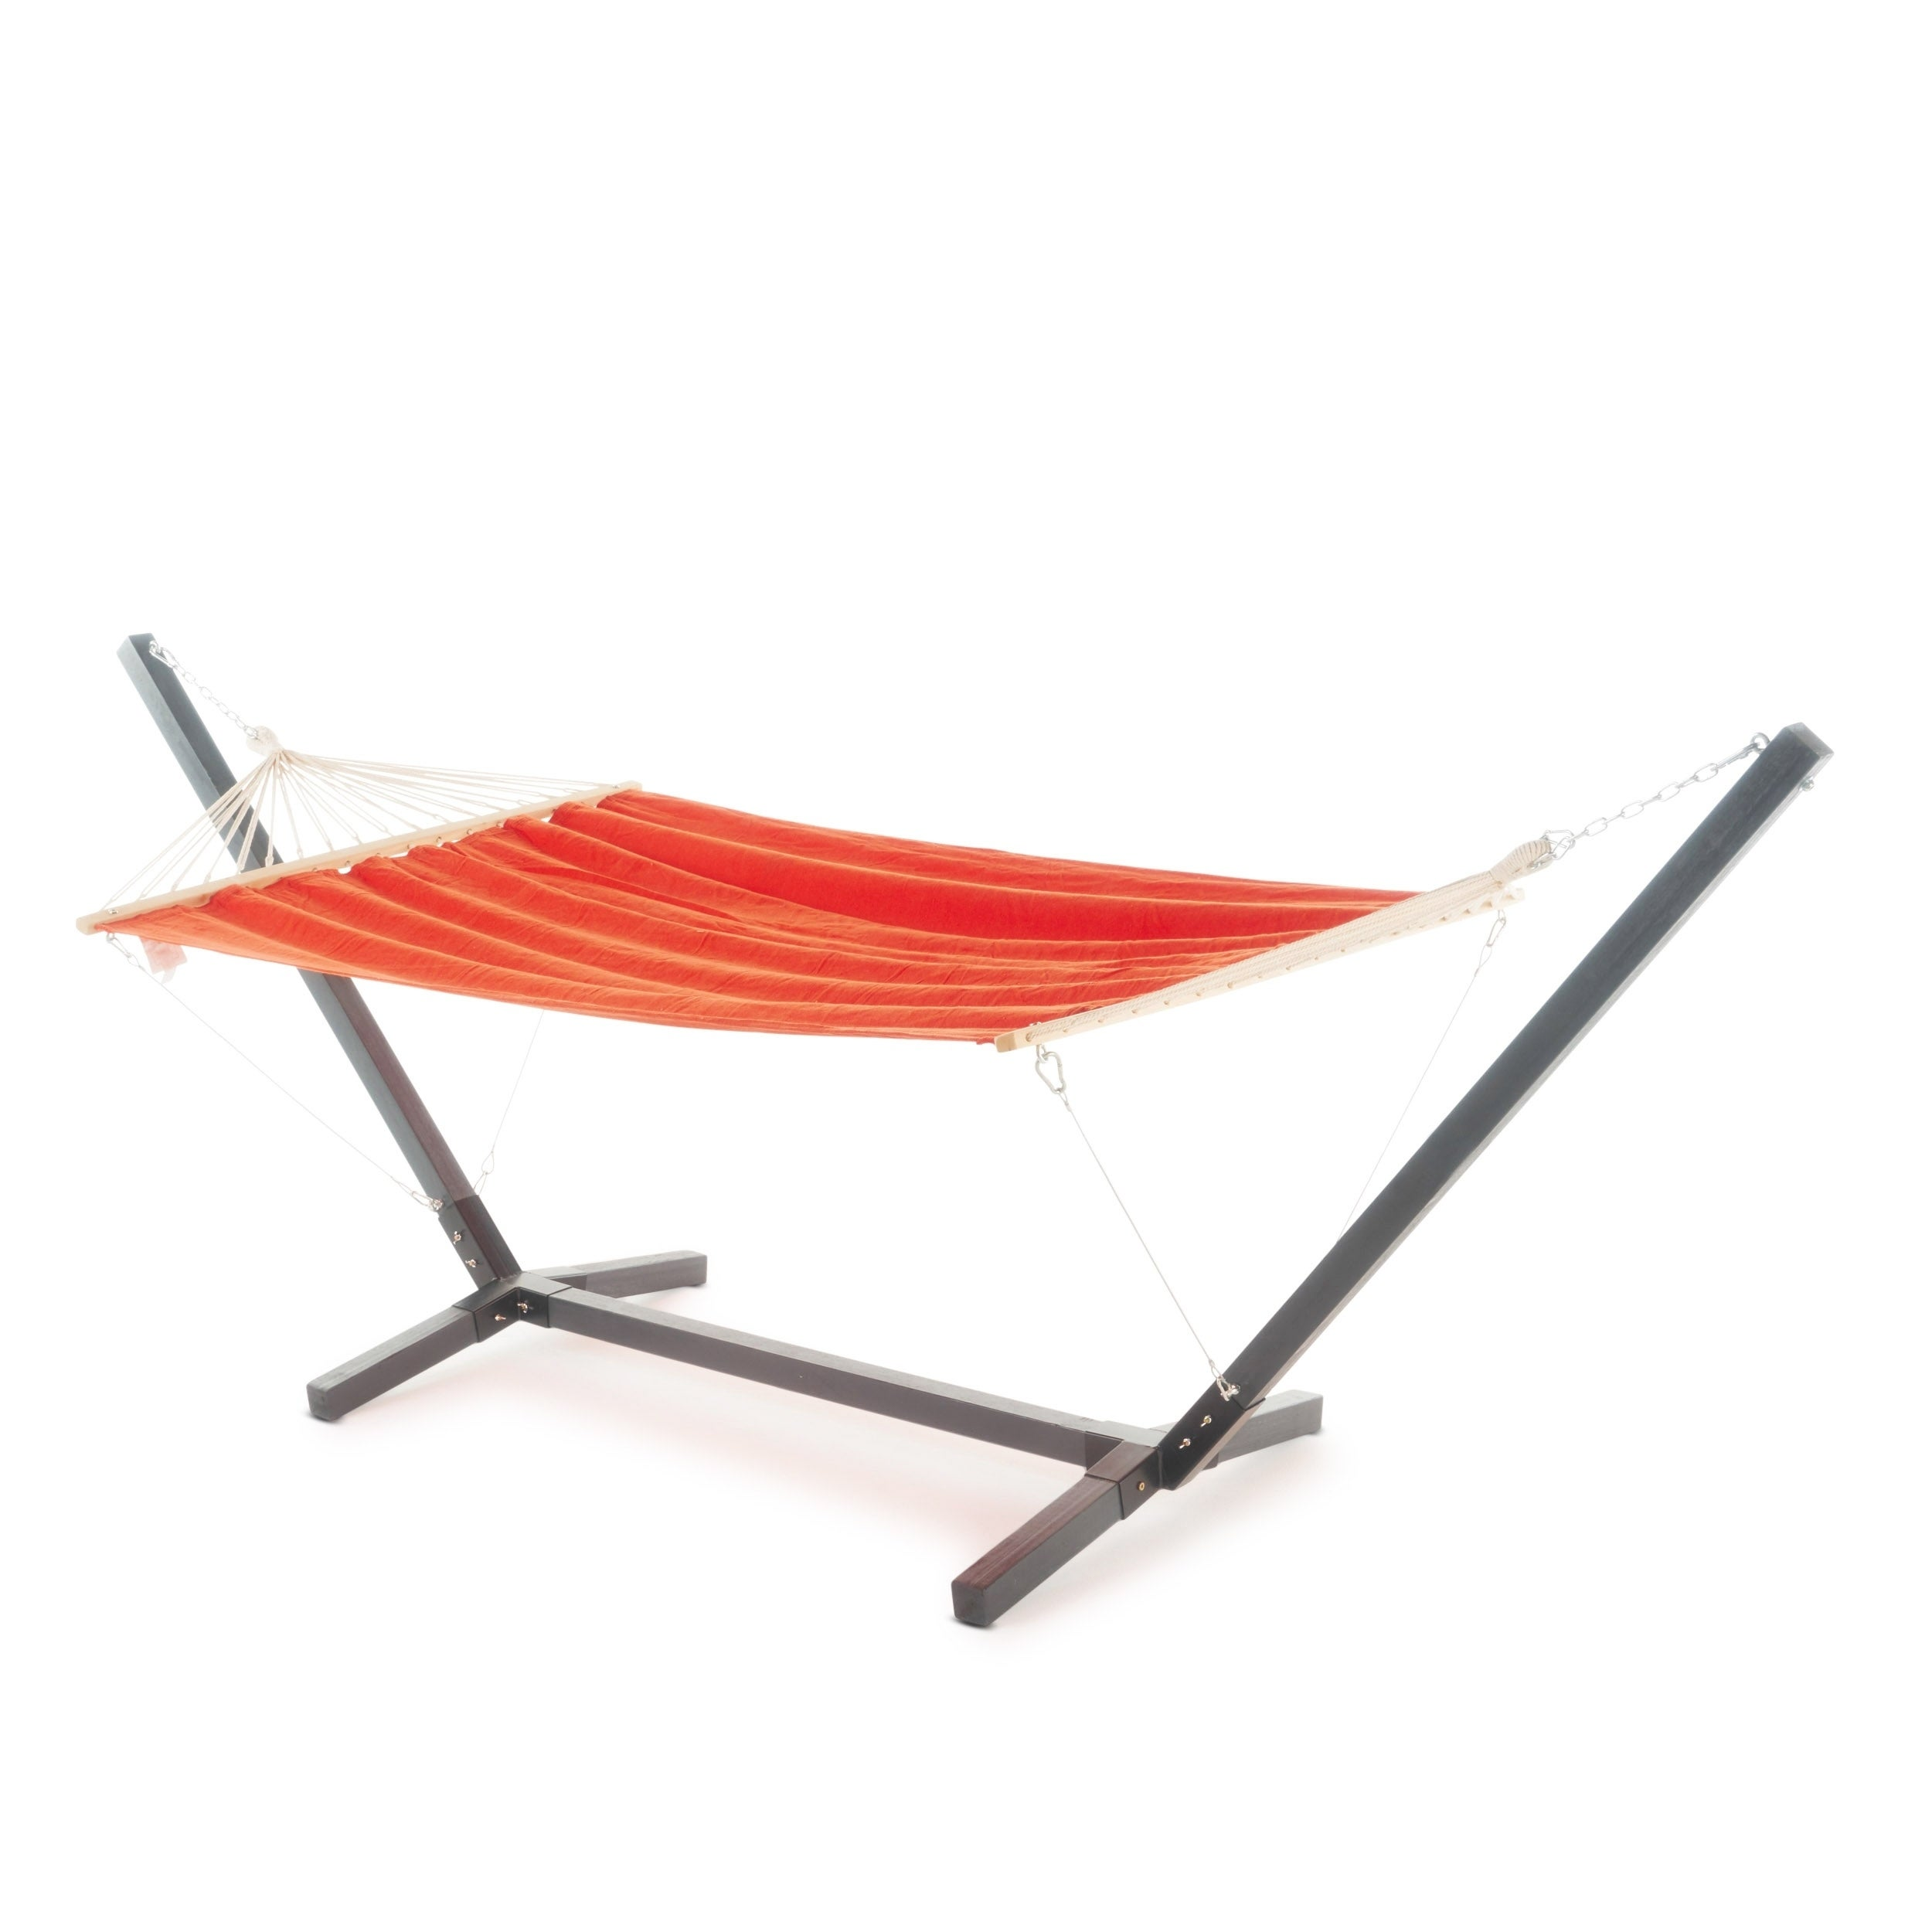 Pleasing Aspen Outdoor Water Resistant Hammock With Grey Larch Wood Frame By Christopher Knight Home N A Gmtry Best Dining Table And Chair Ideas Images Gmtryco